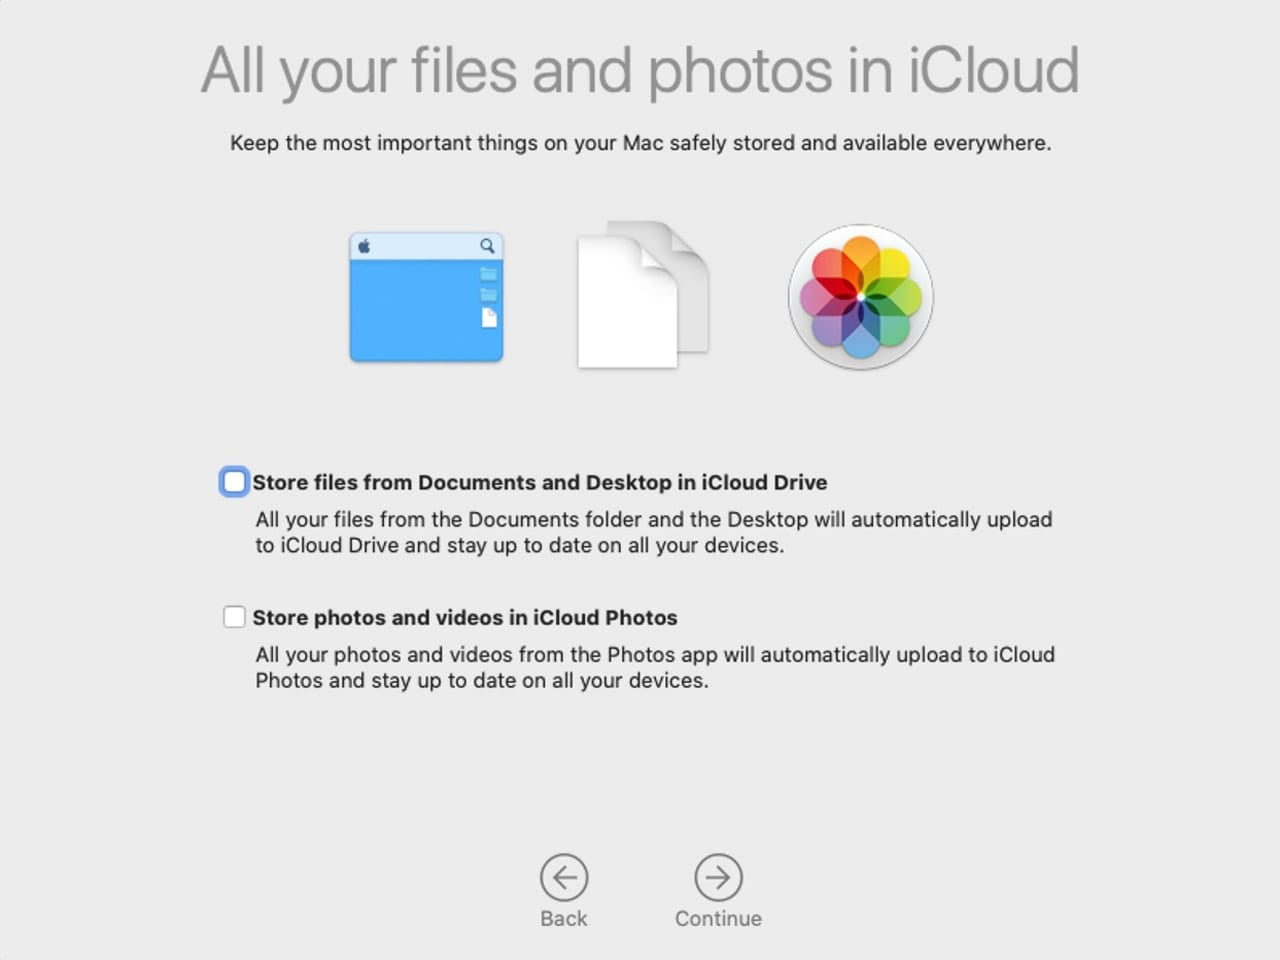 You can choose to store some of your files in iCloud.